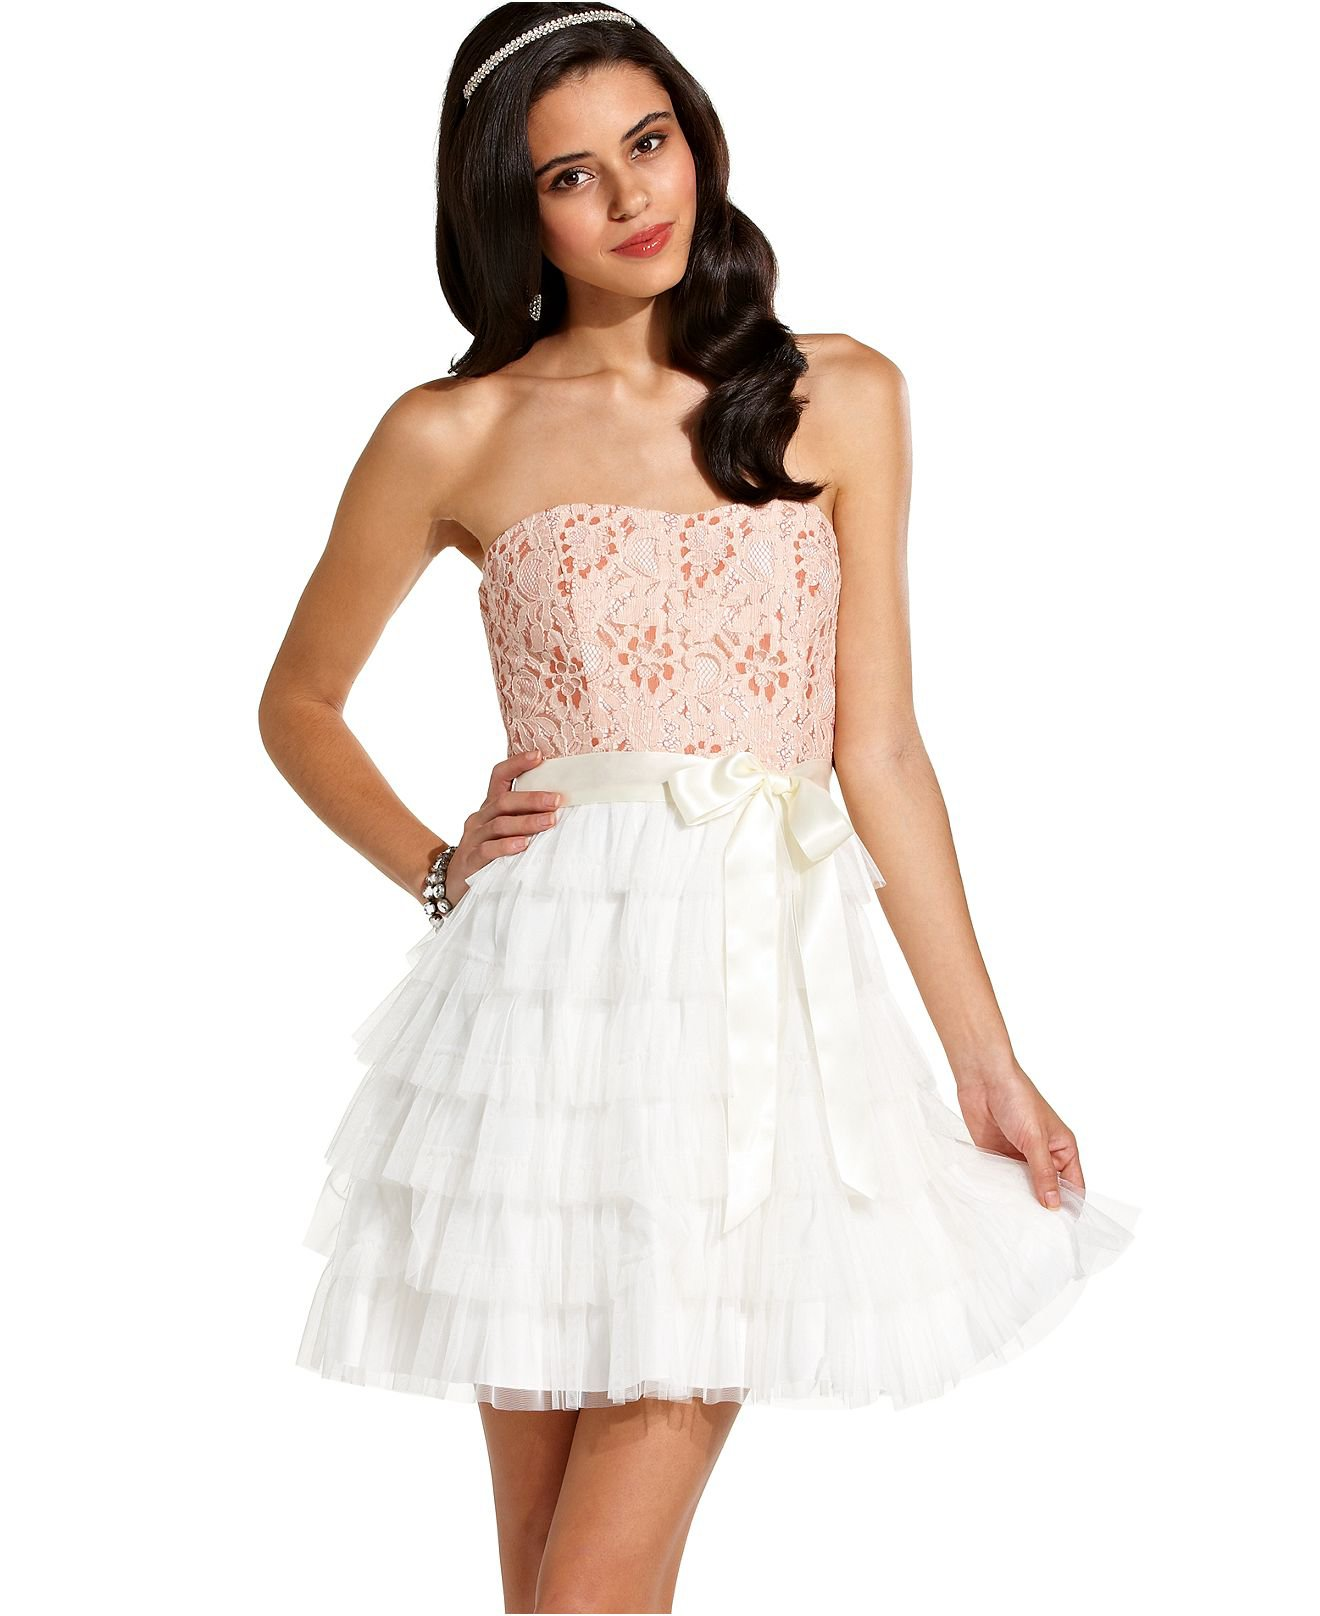 Teeze me juniors dress strapless lace from macys dresses for Macy s dresses for weddings